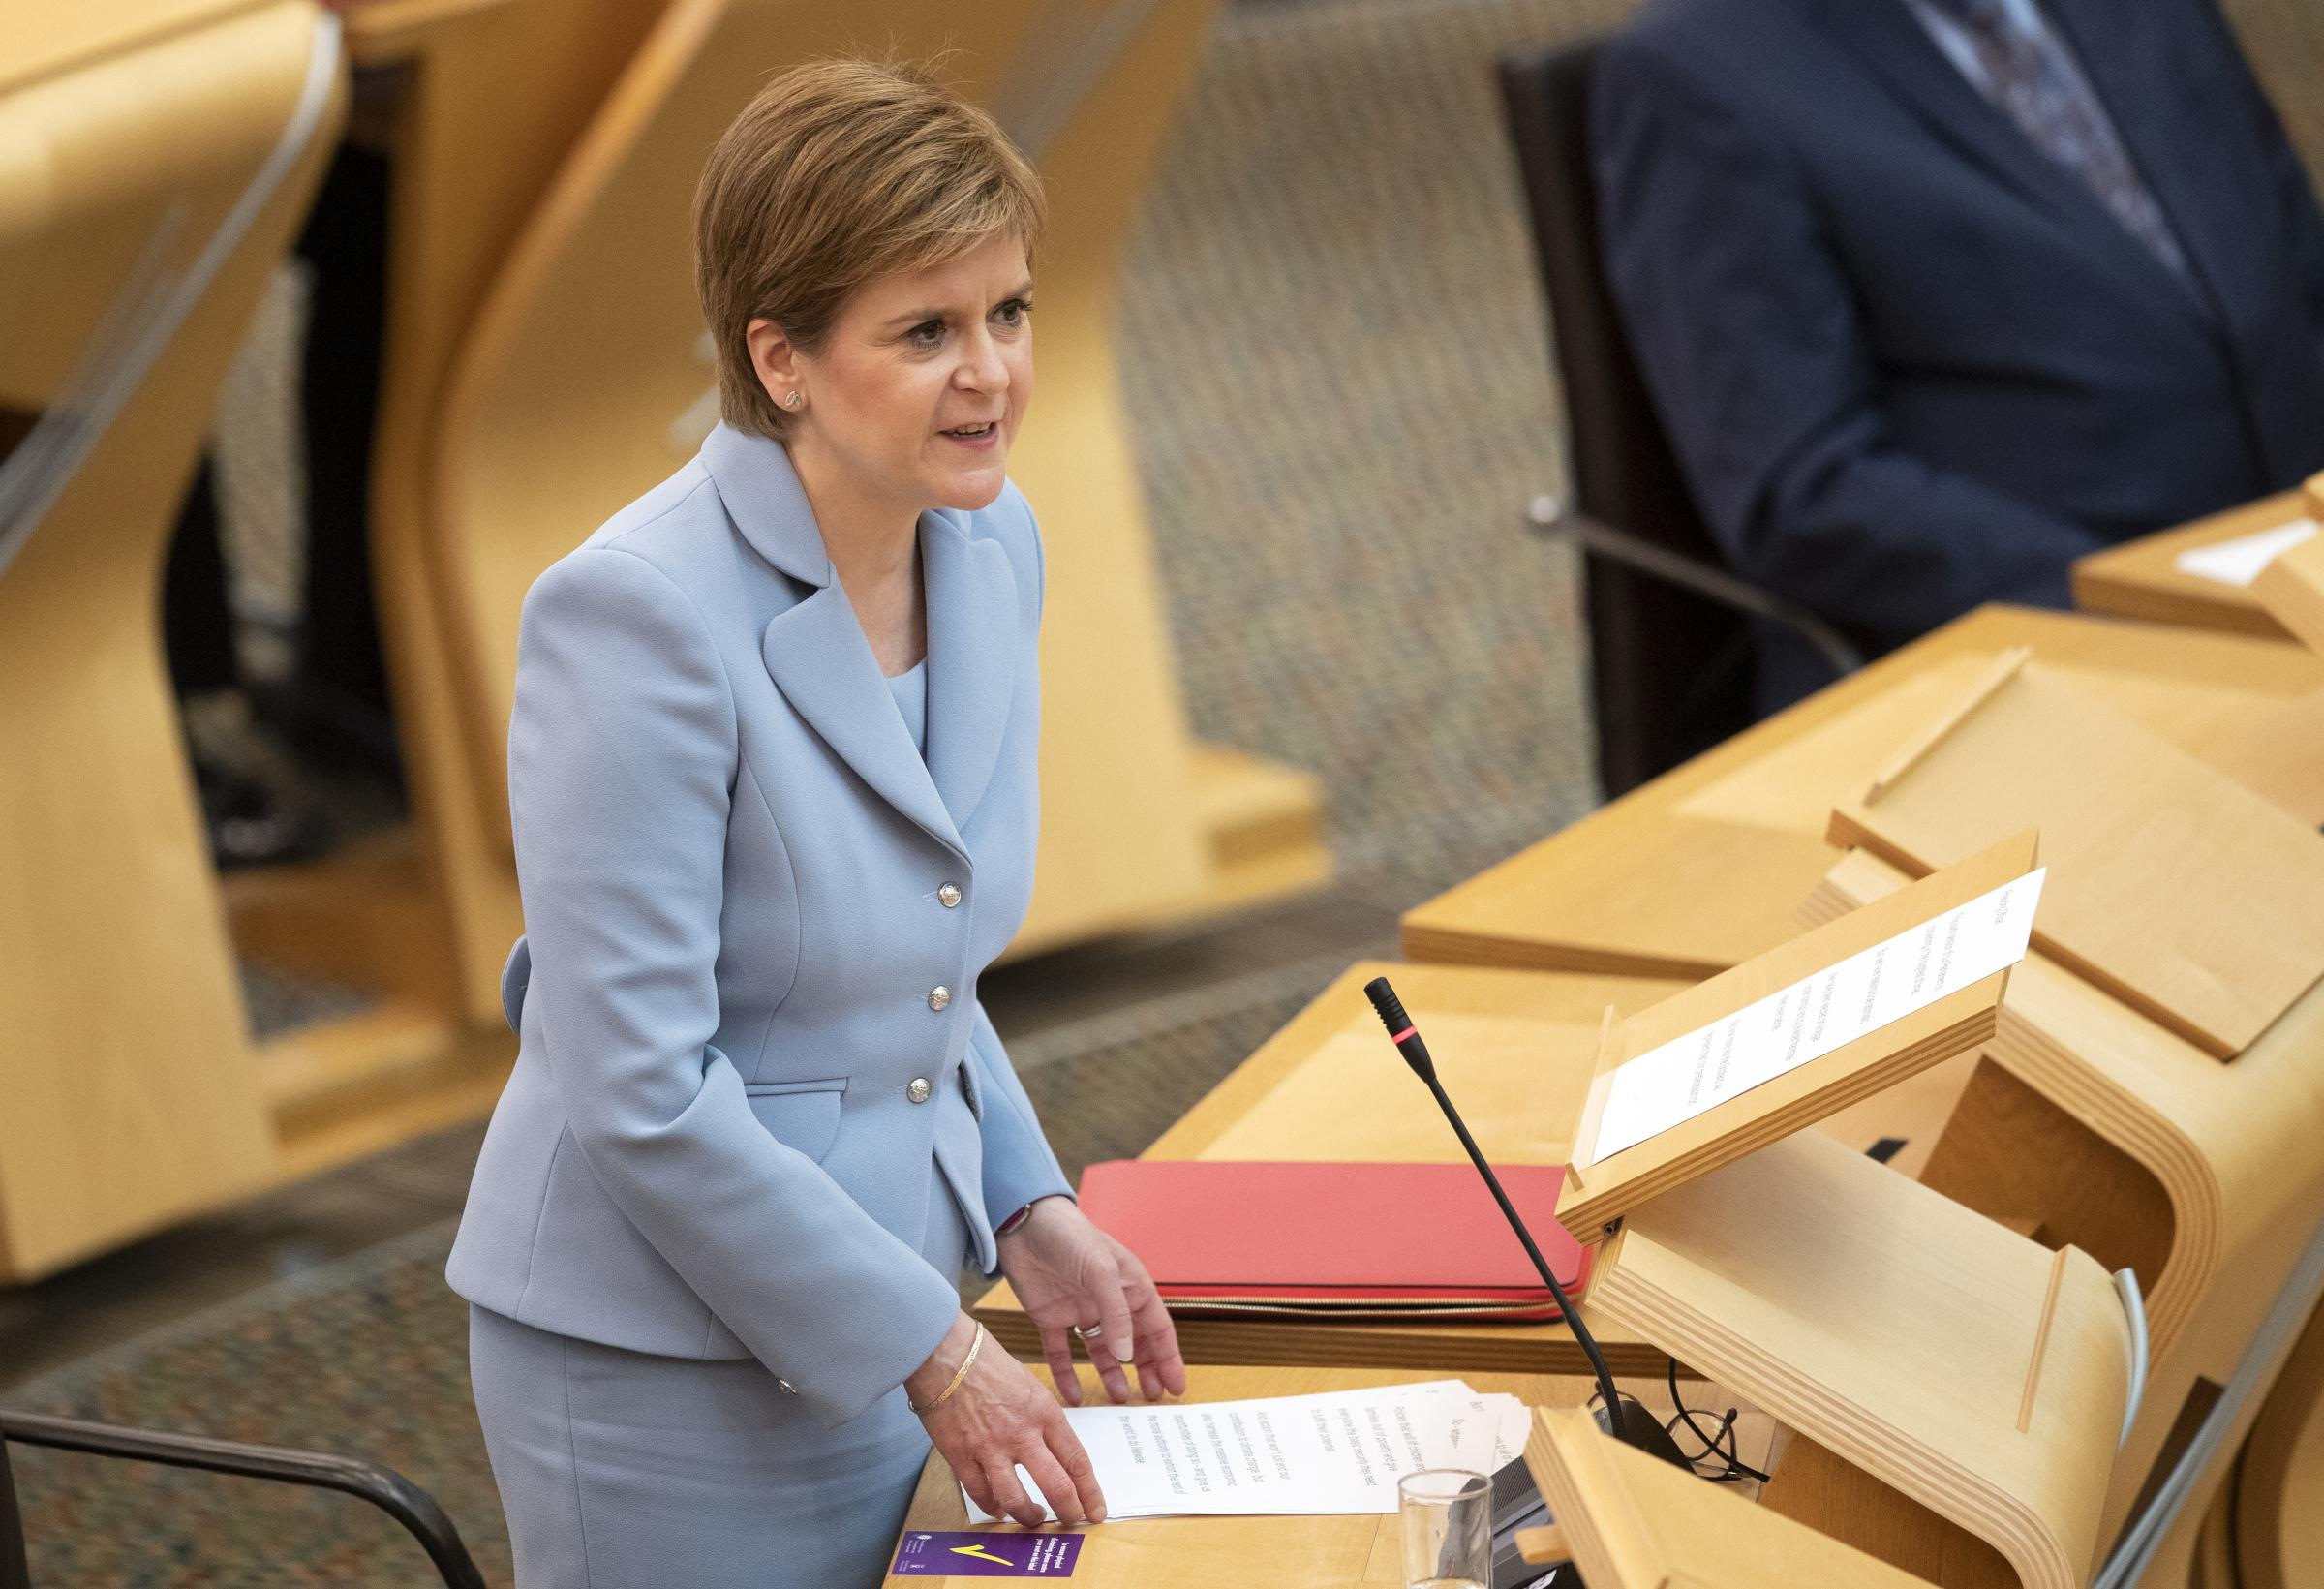 How to watch Nicola Sturgeon's Coronavirus briefing and what time is it on?